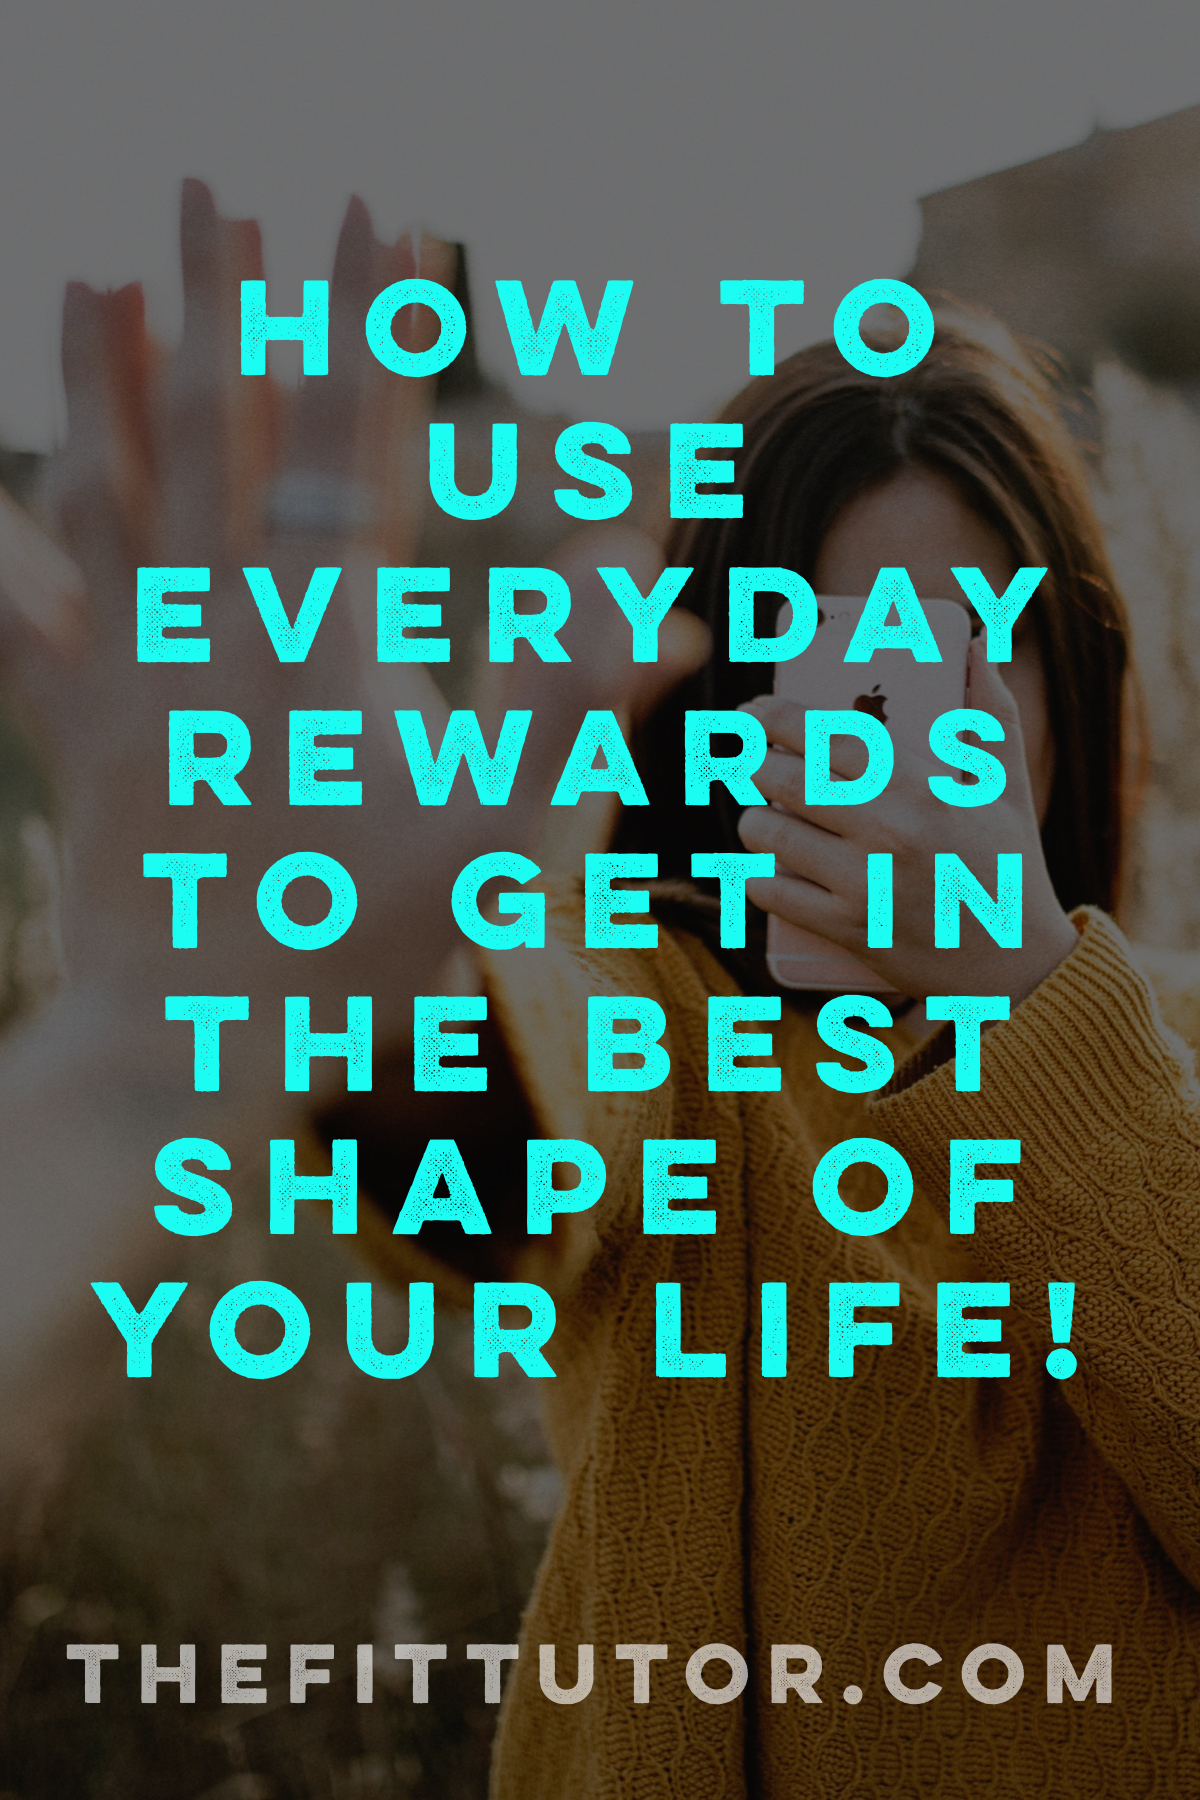 What if you harnessed your social media addiction, love for games or online debates, or heck- even your netflix habit for GOOD? :) Learn how to use rewards to get in great shape!